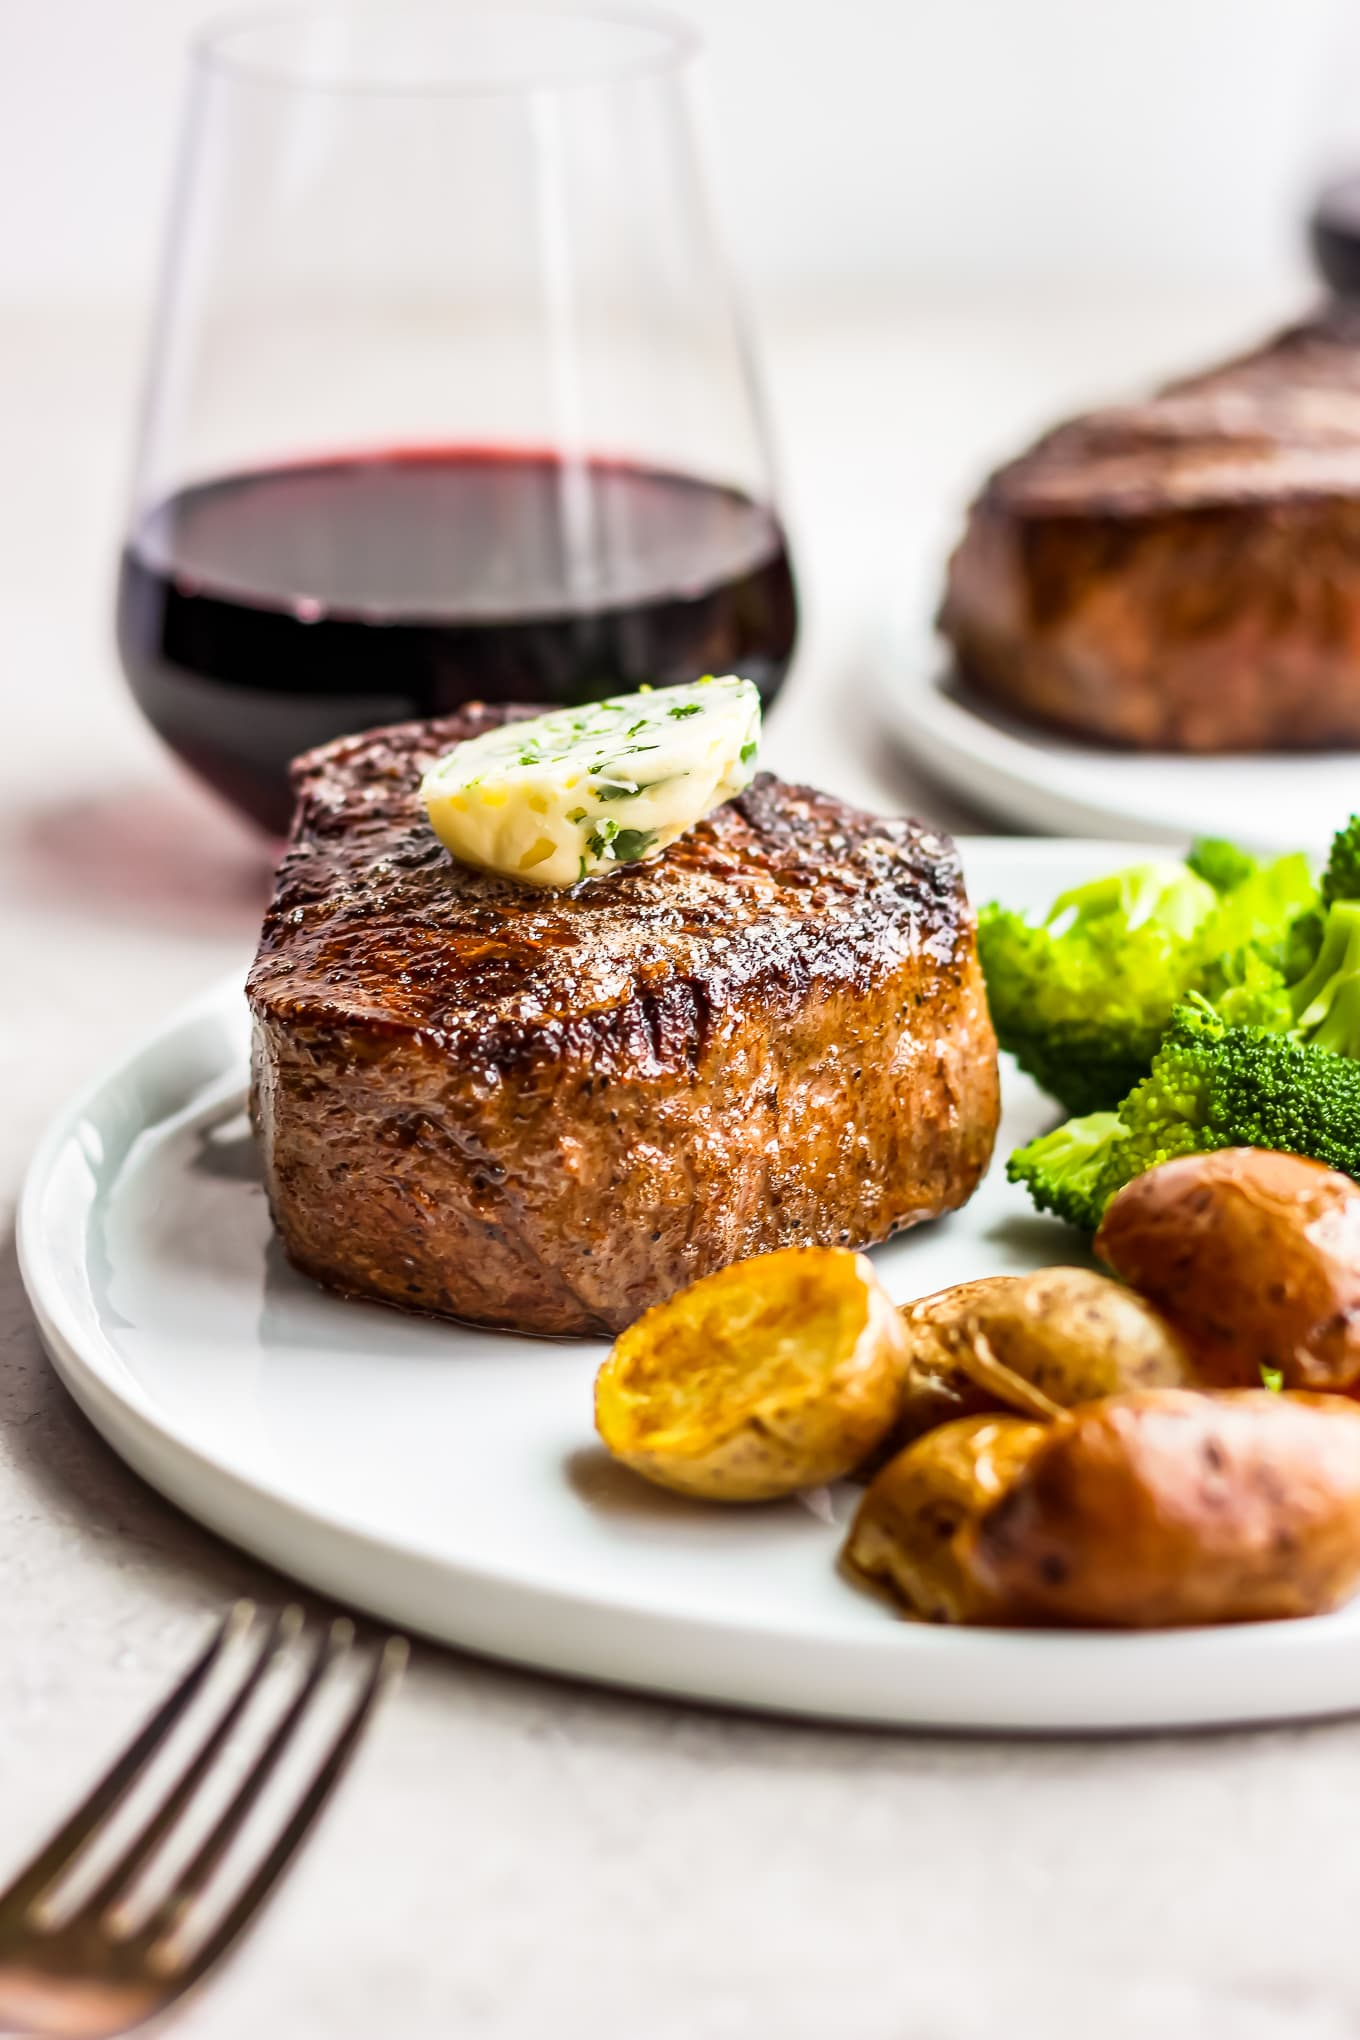 steak dinner with a glass of red wine